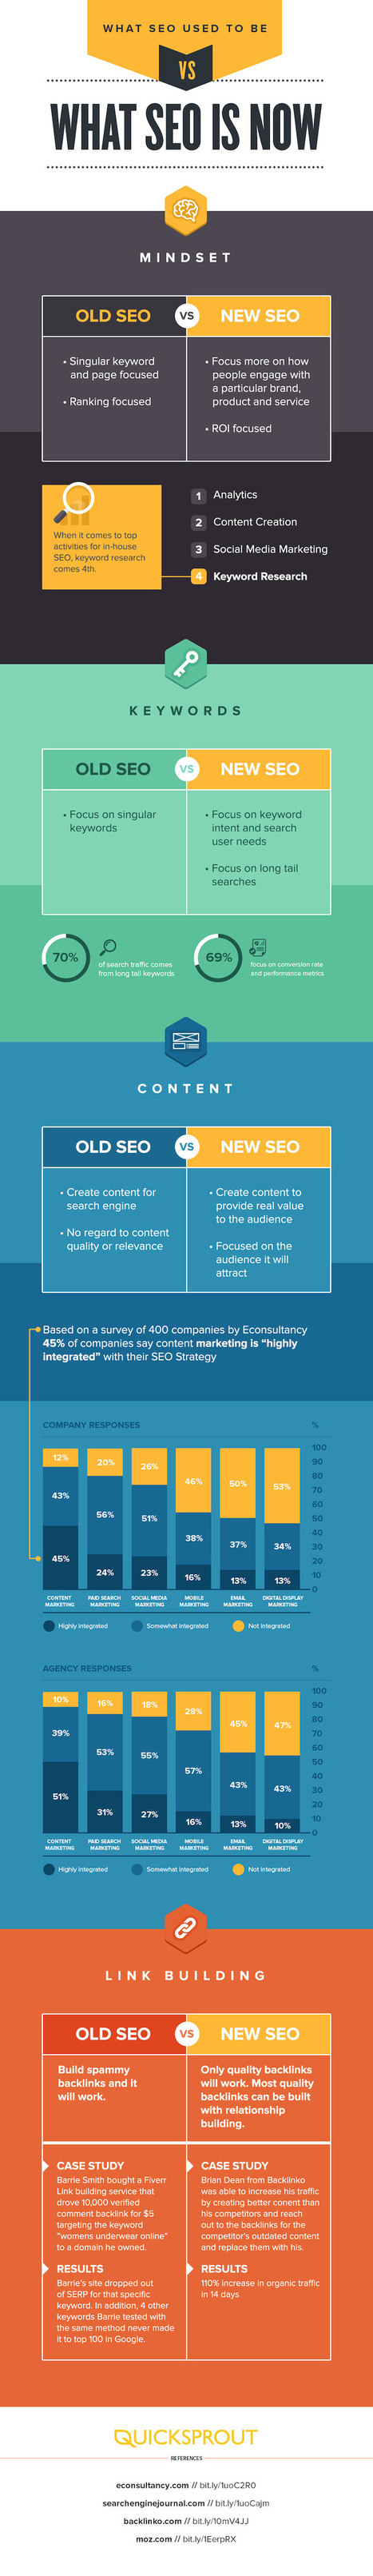 SEO: what it used to be vs what it is now | Great Ideas for Non-Profits | Scoop.it